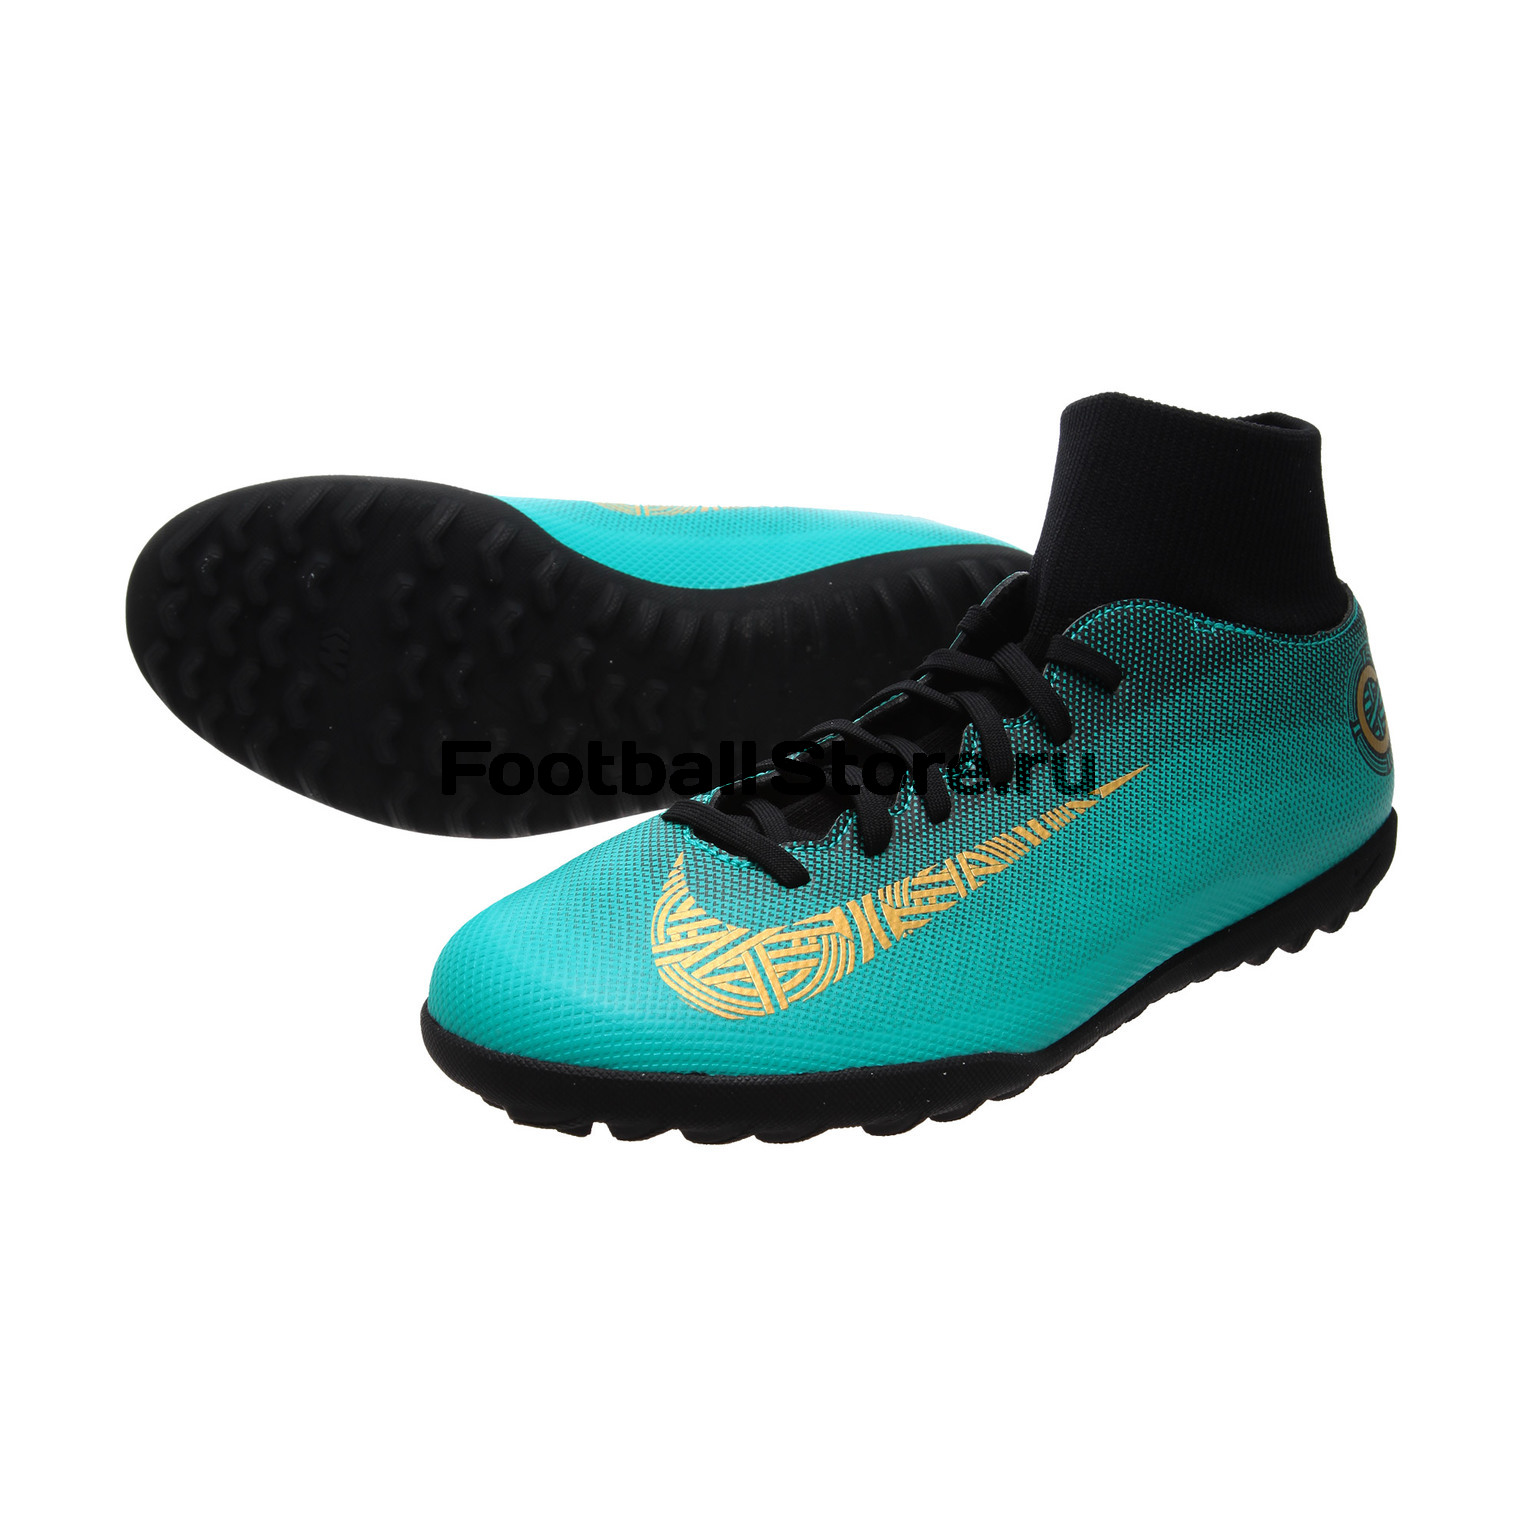 Шиповки Nike Superfly 6 Club CR7 TF AJ3570-390 бутсы nike superfly academy gs cr7 jr fg mg aj3111 390